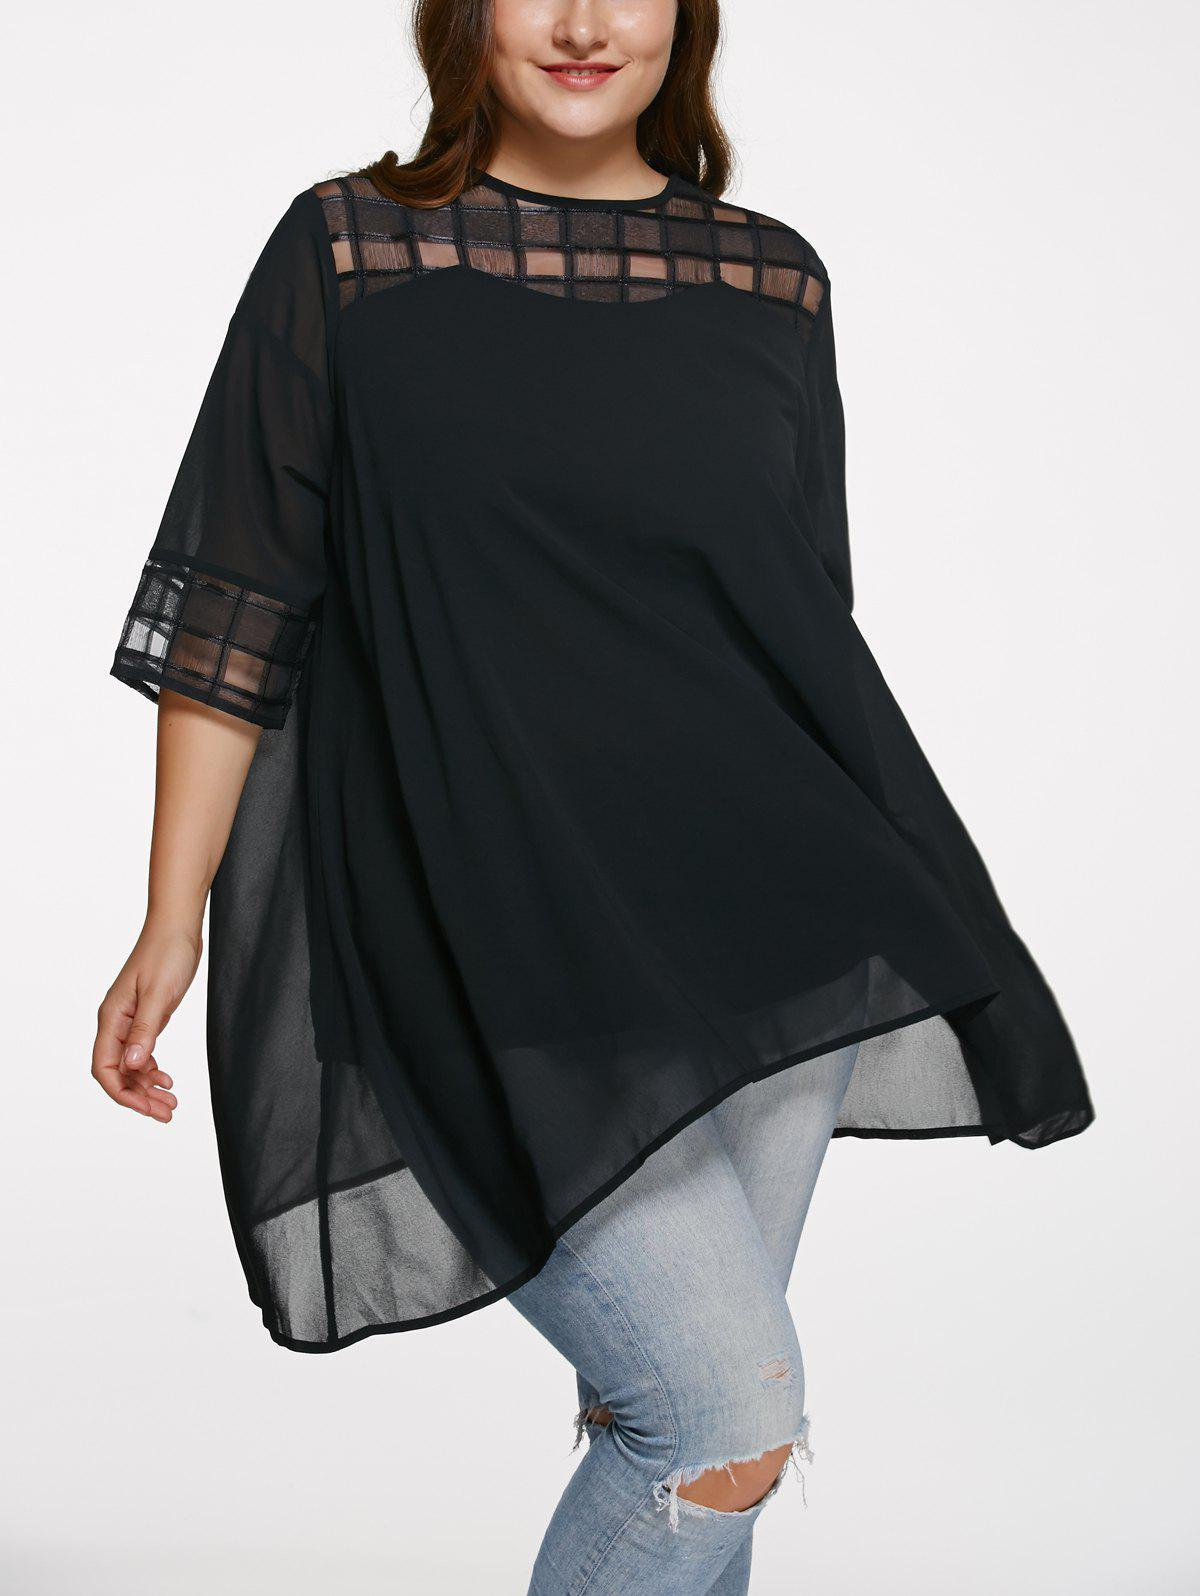 Chic 3/4 Sleeve See-Through Plus Size BlouseWOMEN<br><br>Size: 4XL; Color: BLACK; Material: Polyester; Fabric Type: Chiffon; Shirt Length: Long; Sleeve Length: Three Quarter; Collar: Round Neck; Style: Fashion; Season: Spring,Summer; Pattern Type: Solid; Weight: 0.2650kg; Package Contents: 1 x Blouse;